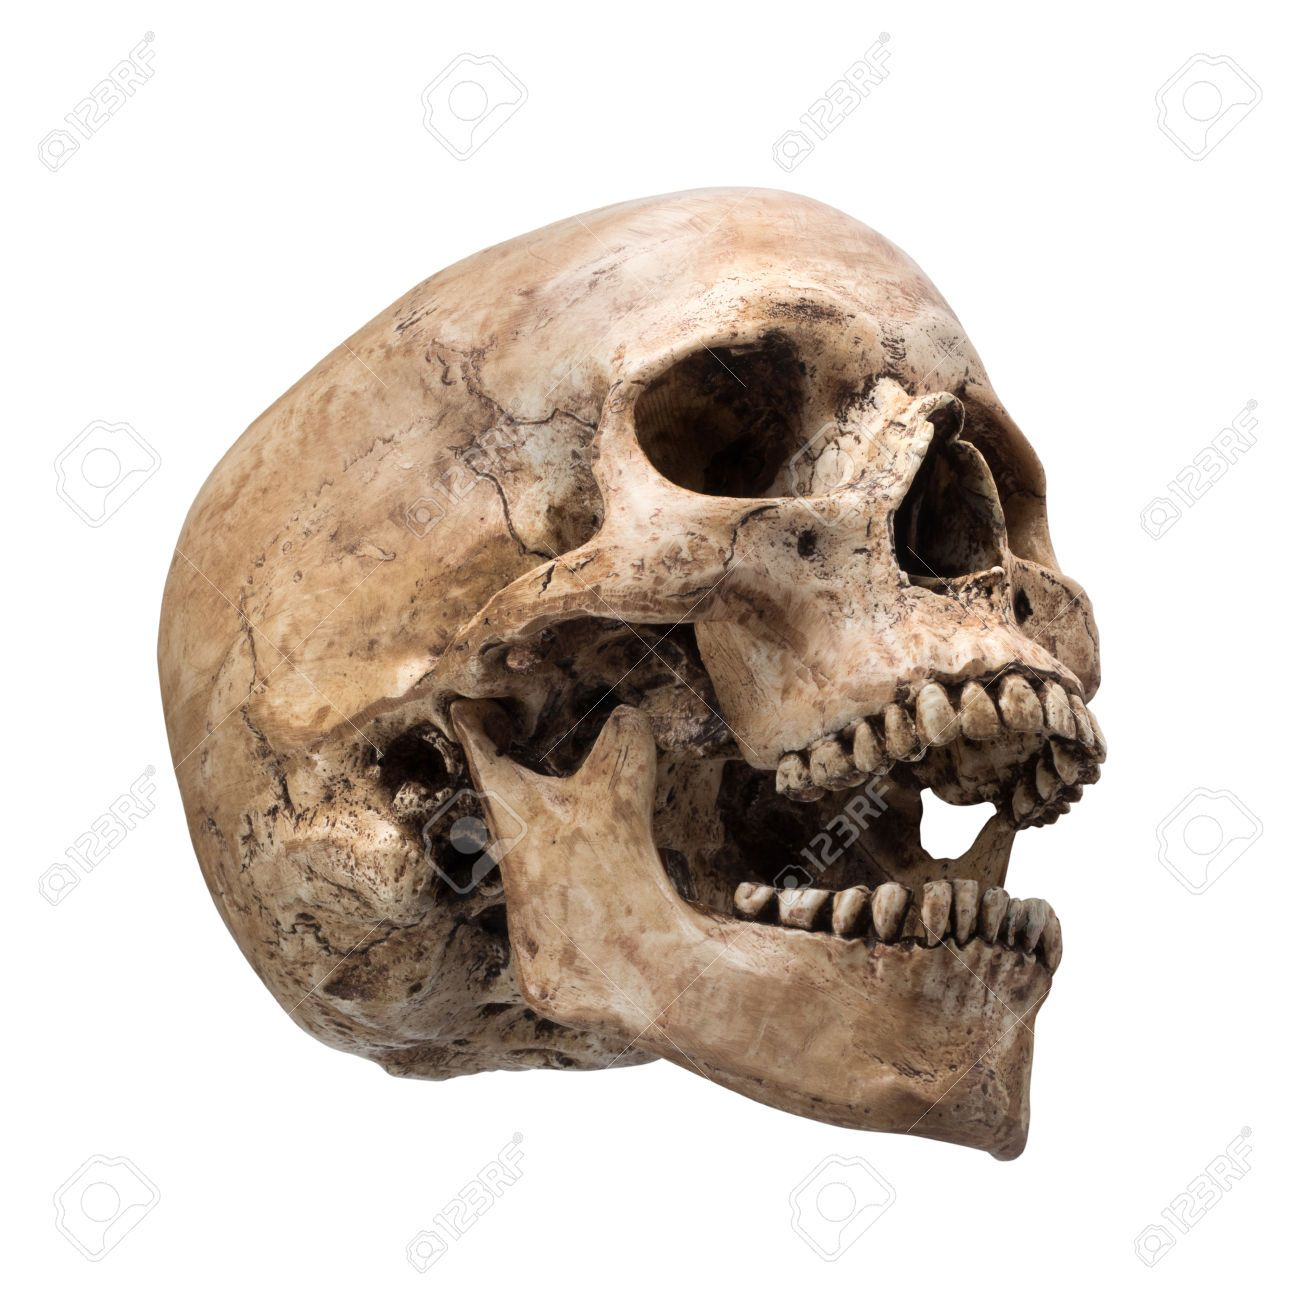 1300x1299 28216320 Sideview Of Human Skull Open Mouth On Isolated White